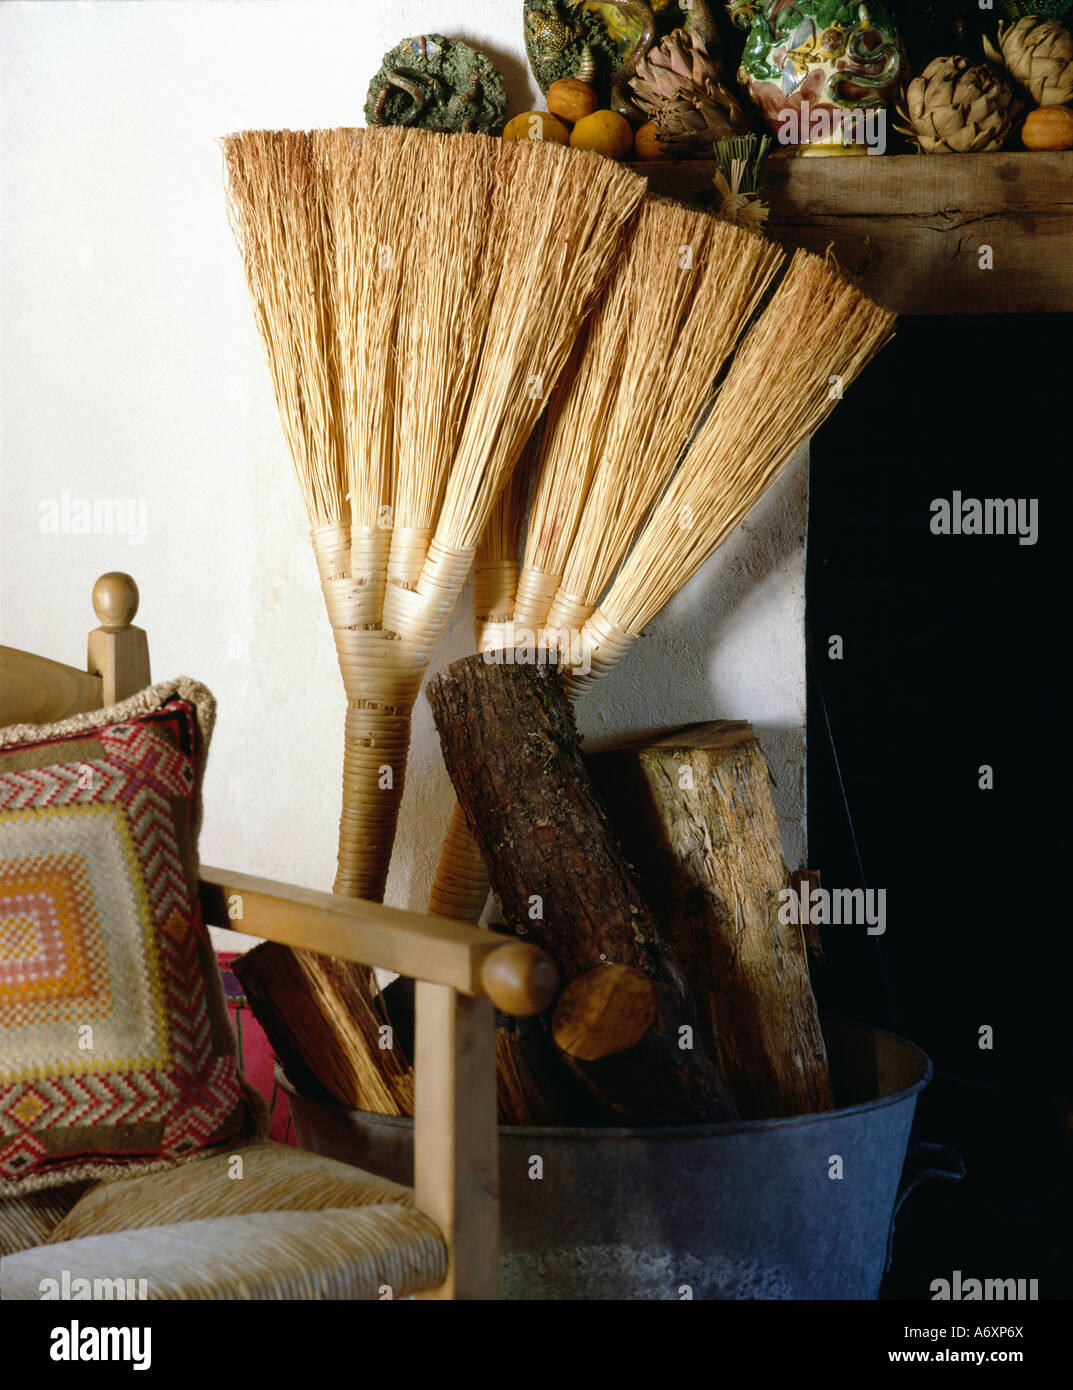 Wooden armchair with cushion - Close Up Of Two Rustic Brooms Beside Pile Of Logs And Wooden Armchair With Ethnic Cushion